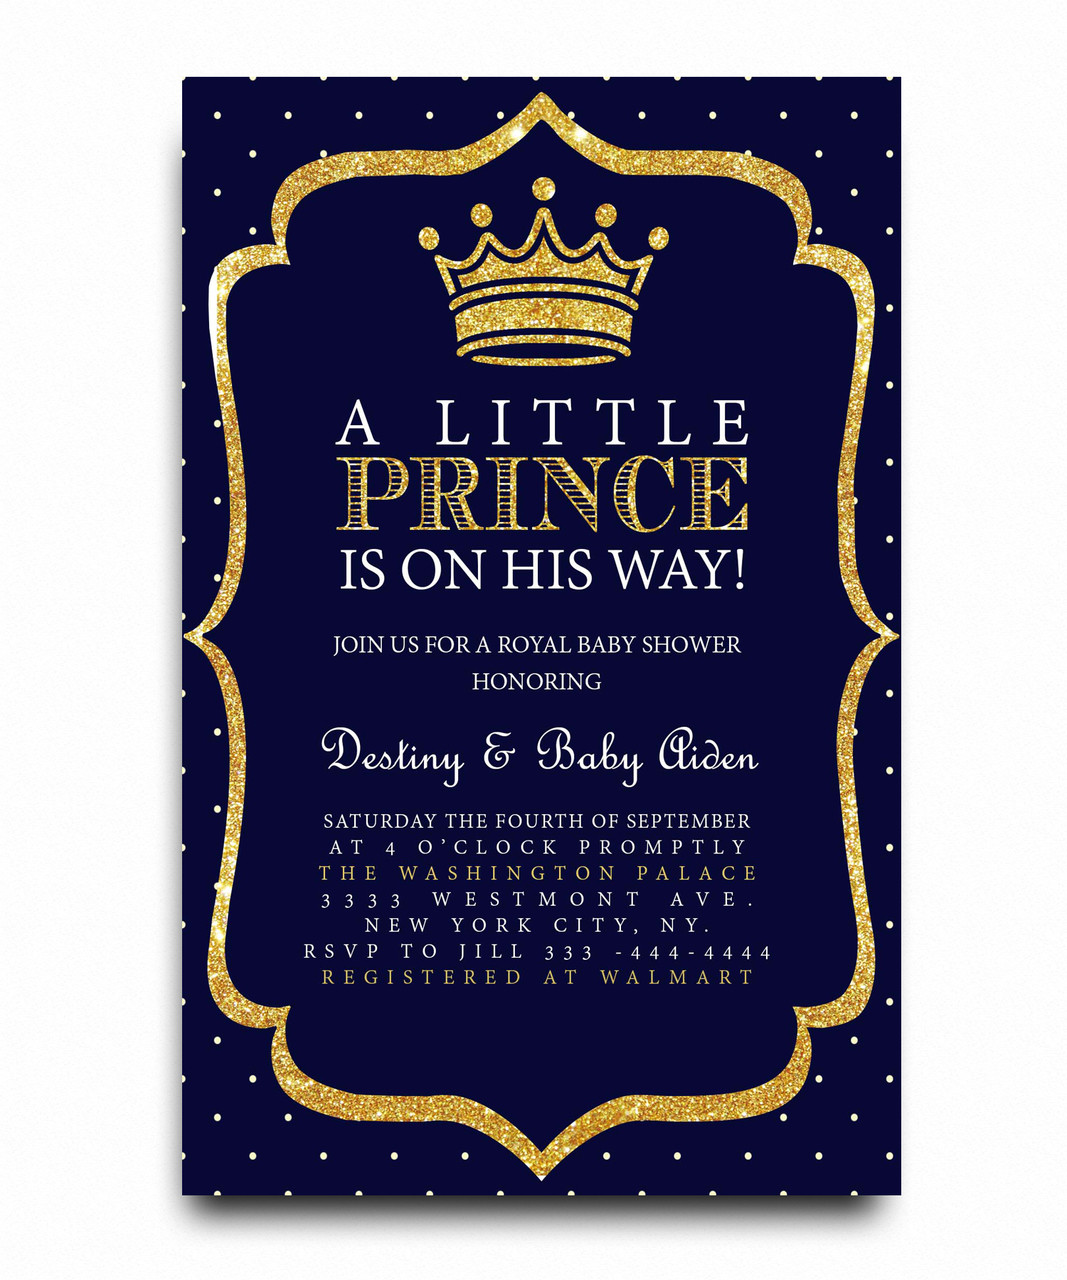 Little Prince Baby Shower Invitation, Royal Baby